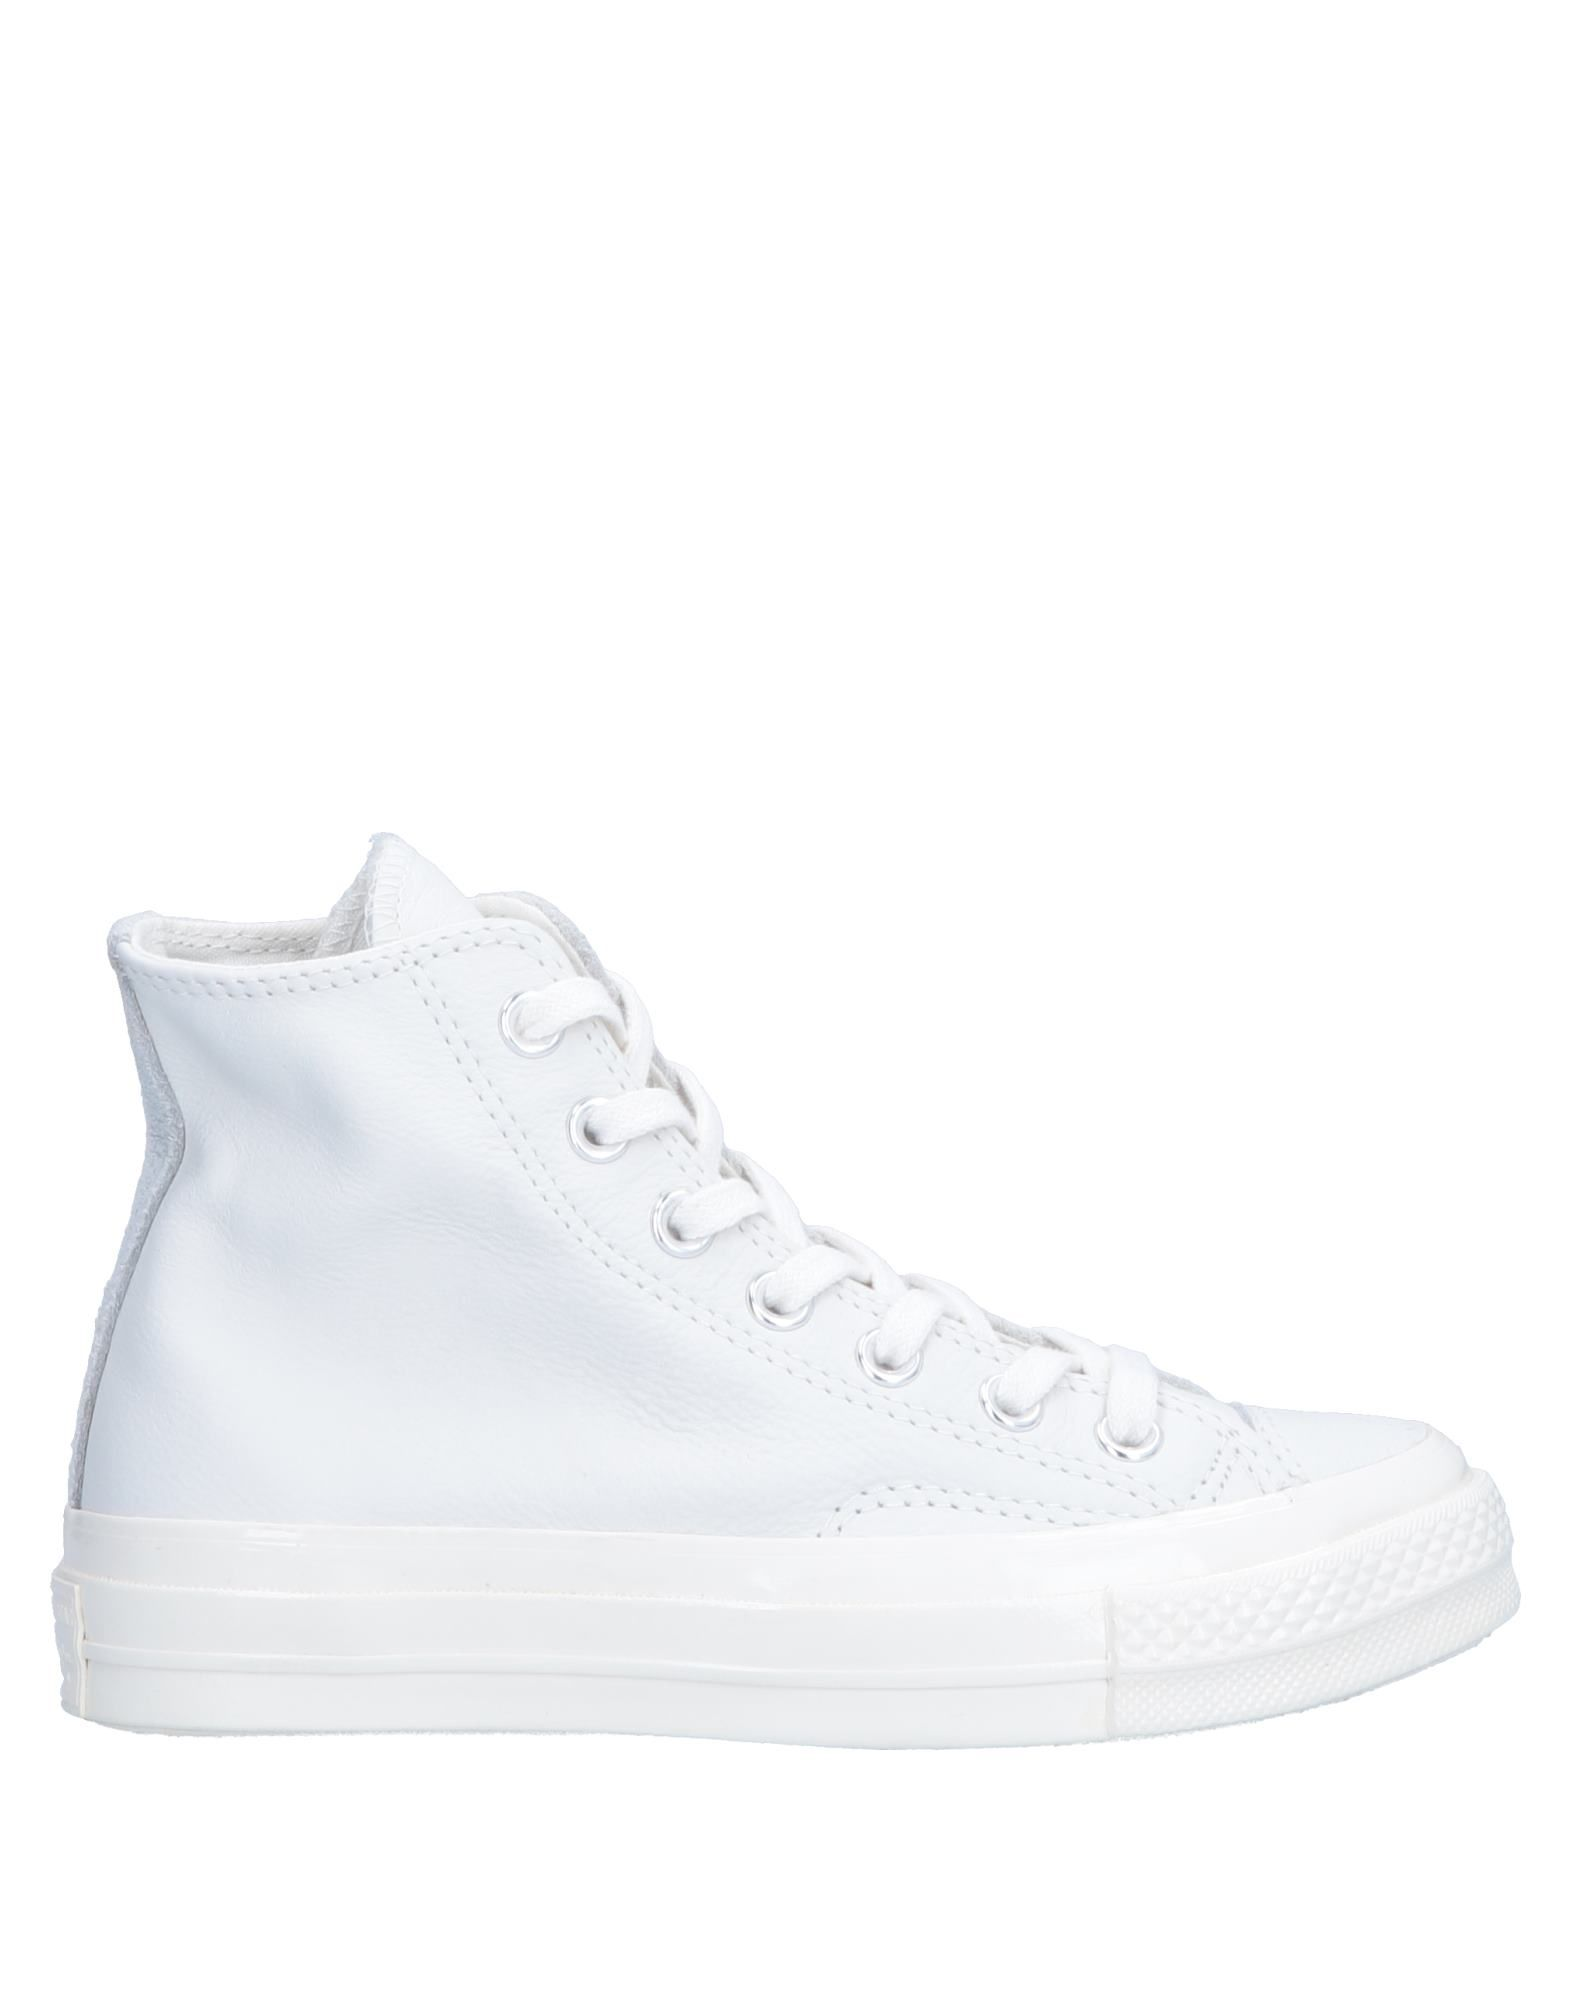 Baskets Converse All Star Femme - Baskets Converse All Star Blanc Dédouanement saisonnier